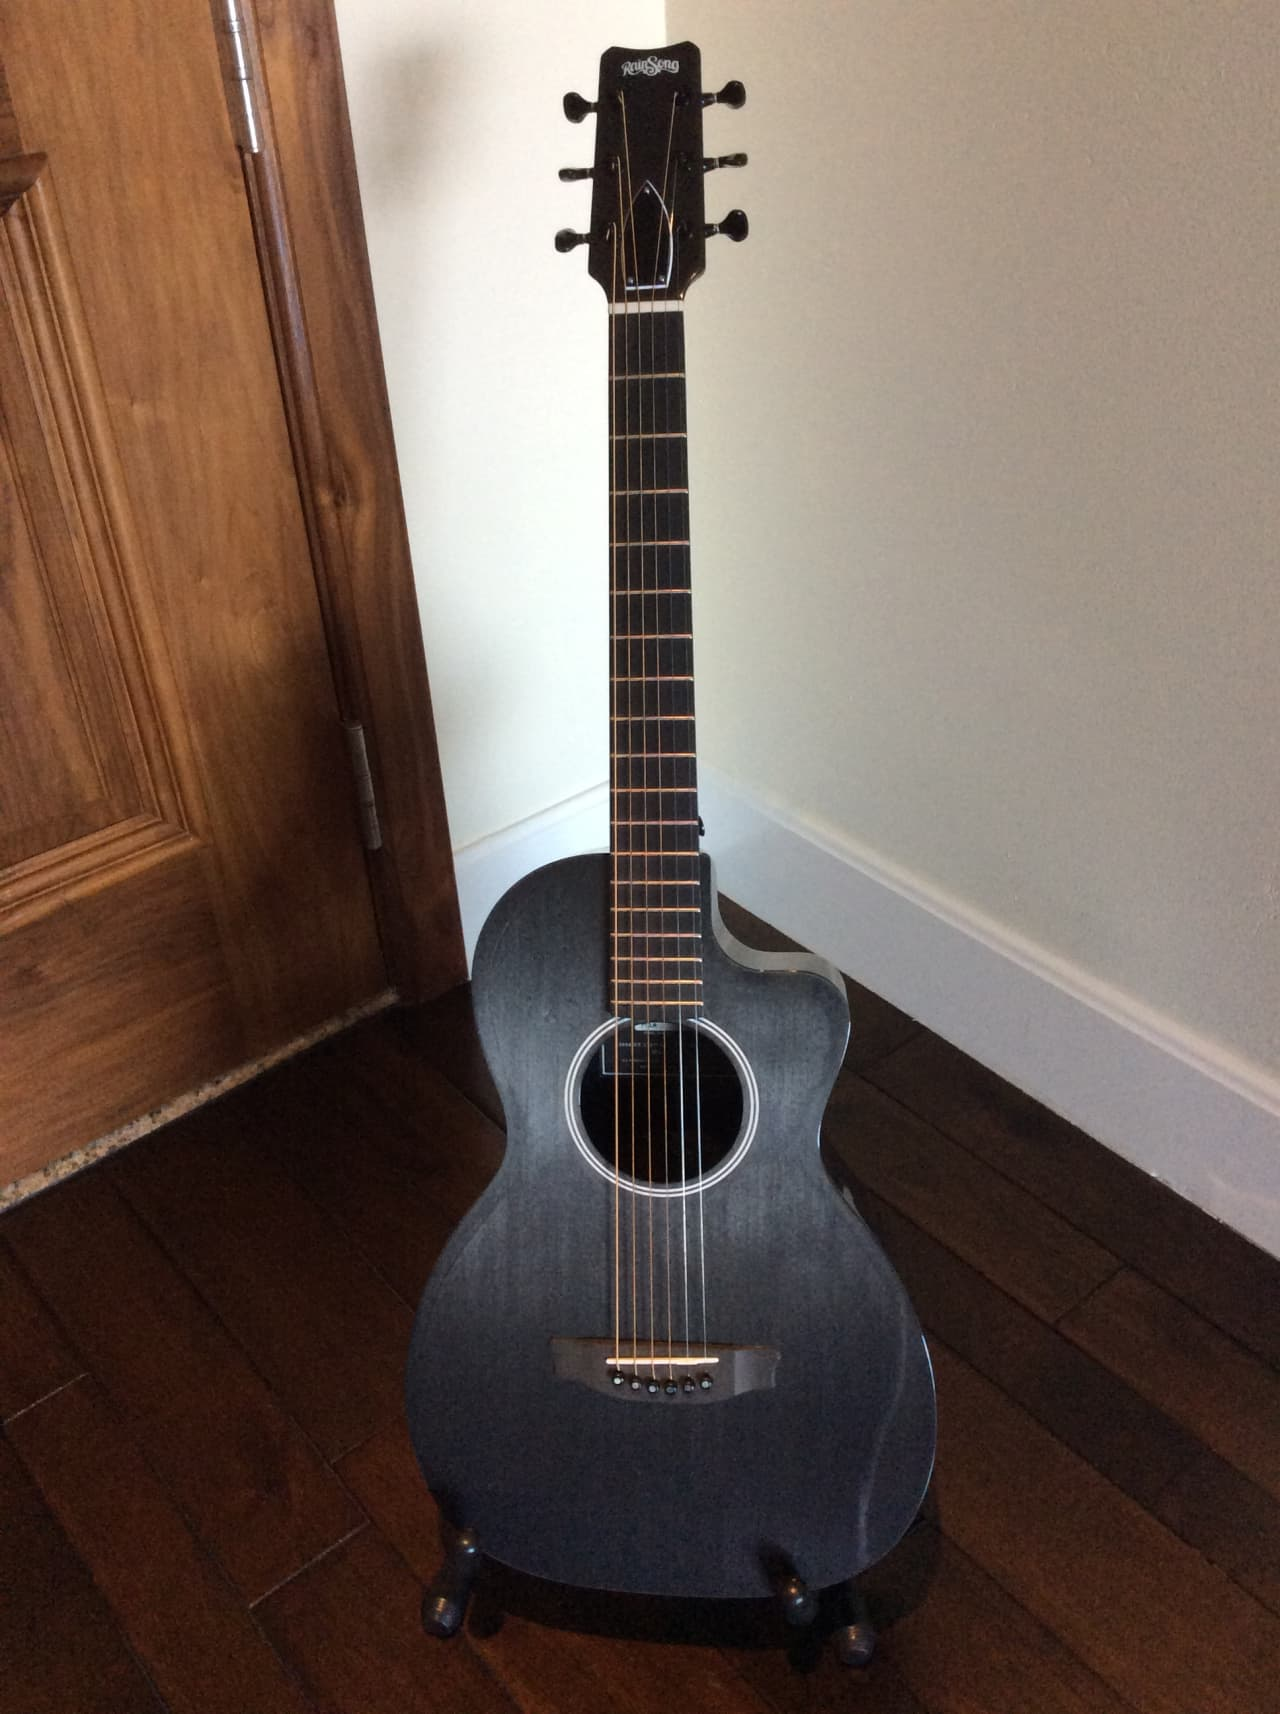 rainsong p12a parlor guitar 2015 locking tuners mint reverb. Black Bedroom Furniture Sets. Home Design Ideas